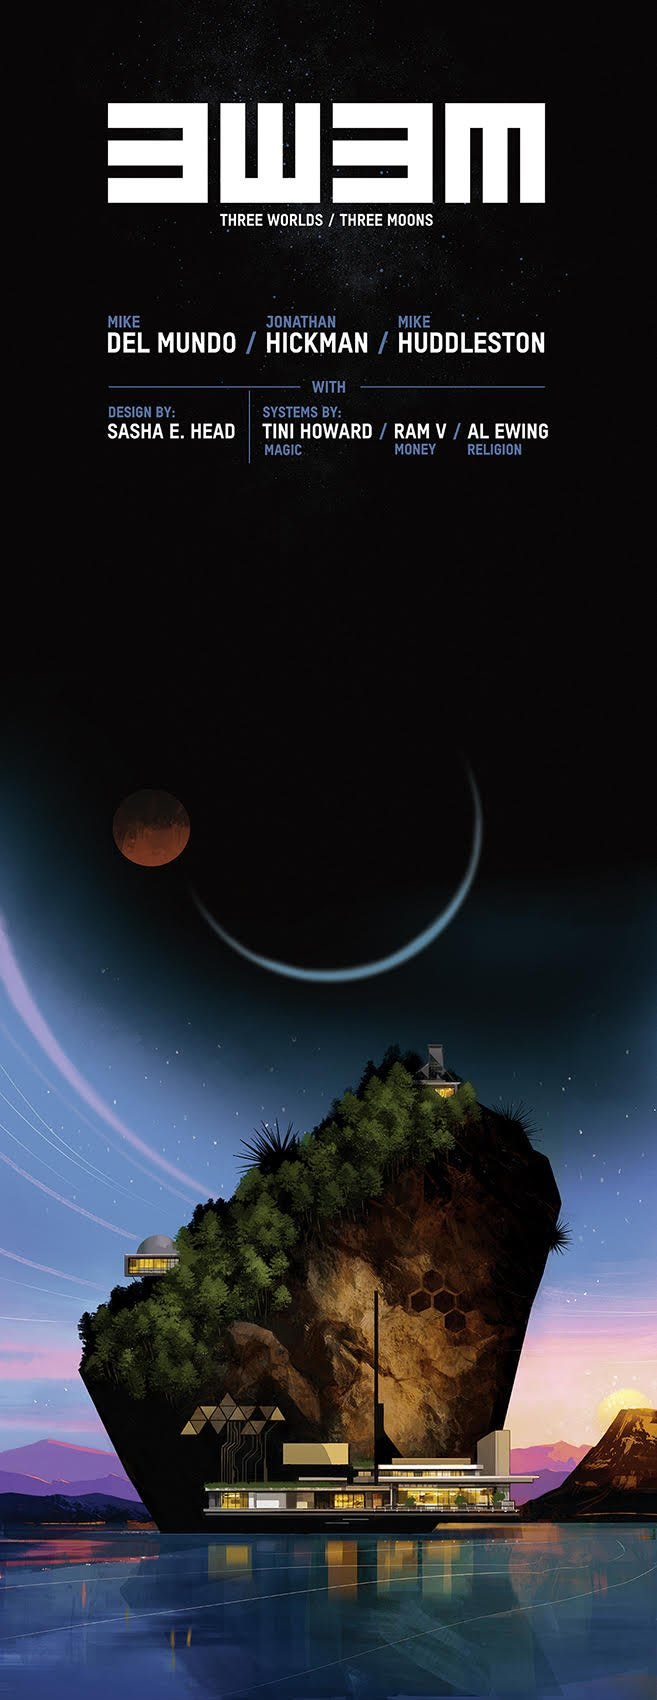 Jonathan Hickman outlines Substack plans for 'Three Worlds Three Moons'